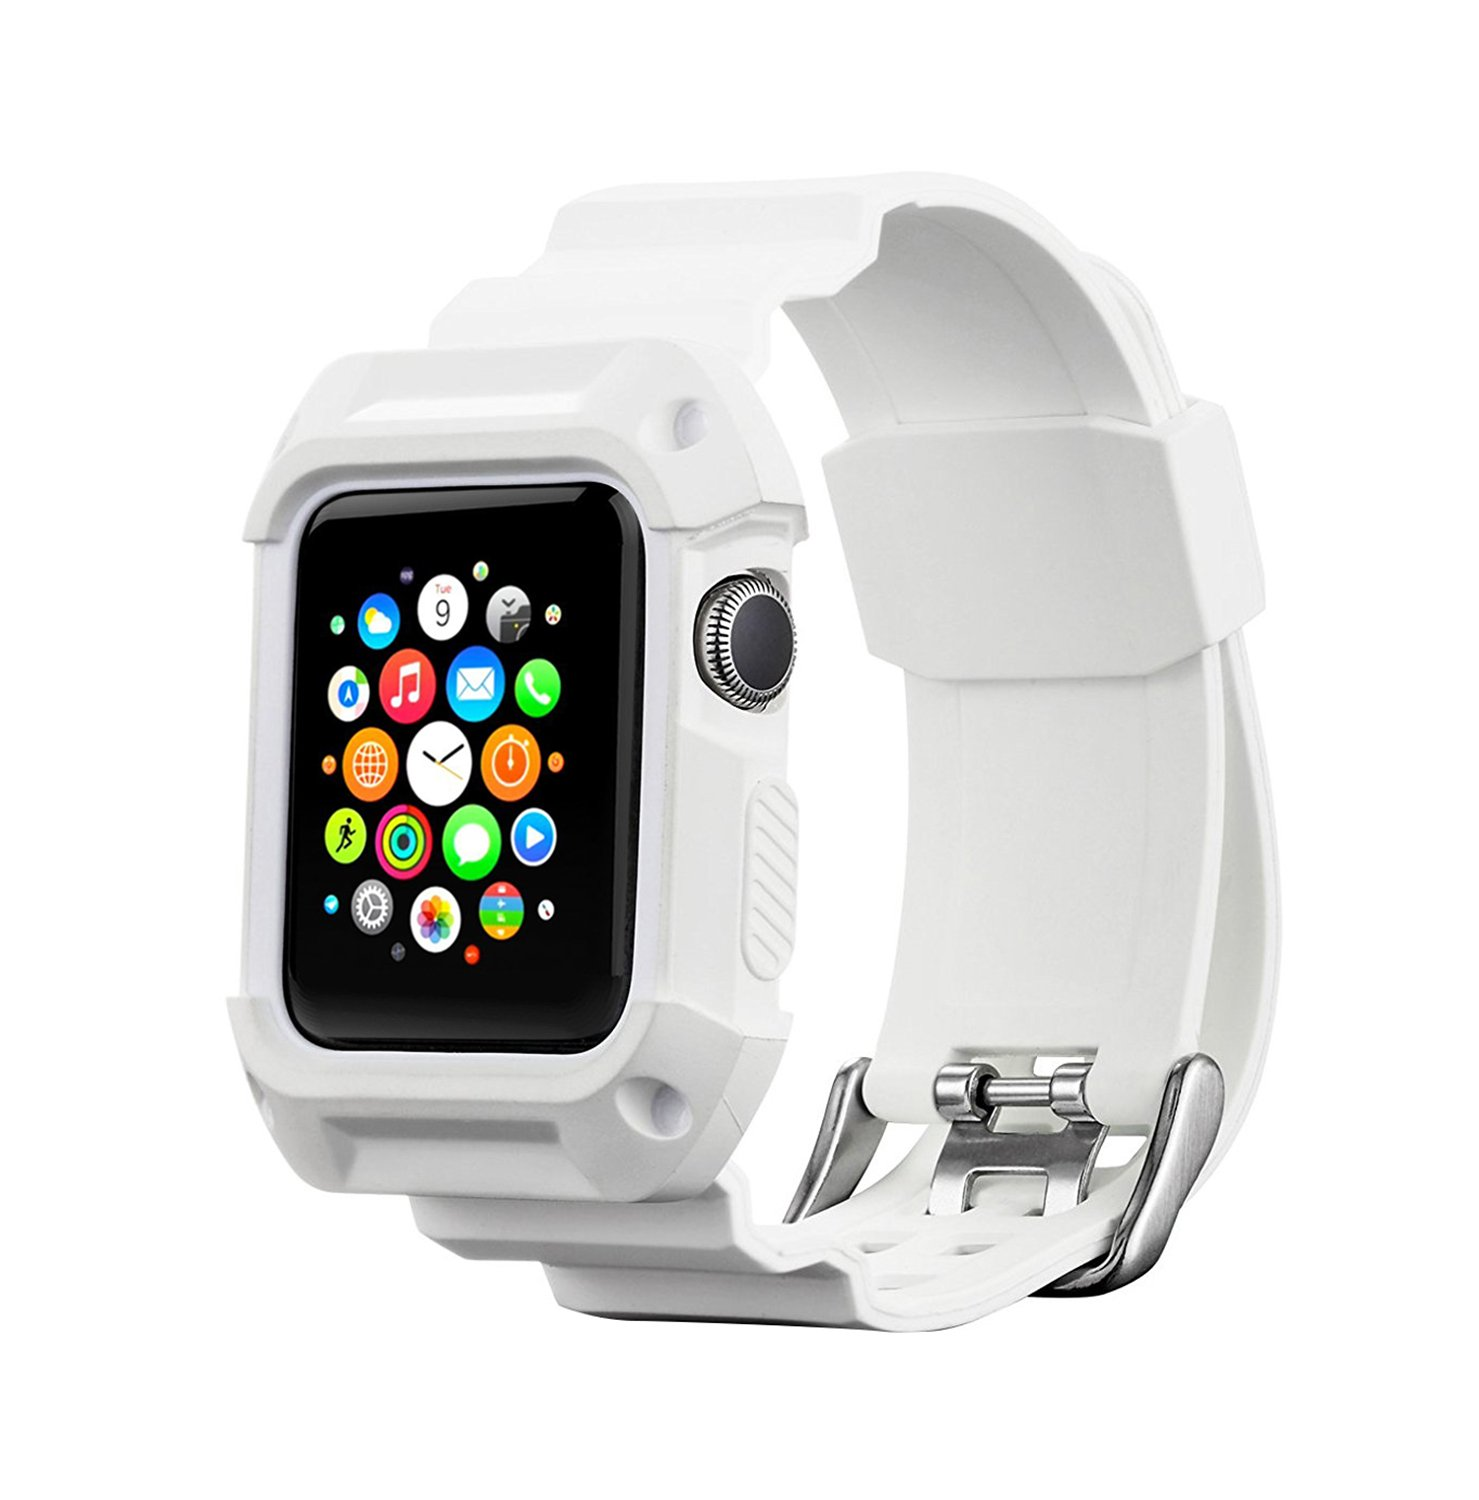 Compatible for Apple Watch Band with Case 42mm, MAIRUI Rugged Protective G-Shock Replacement Strap Wristband for Apple Watch Series 3/2/1, iWatch Sport/Edition (White) by MAIRUI